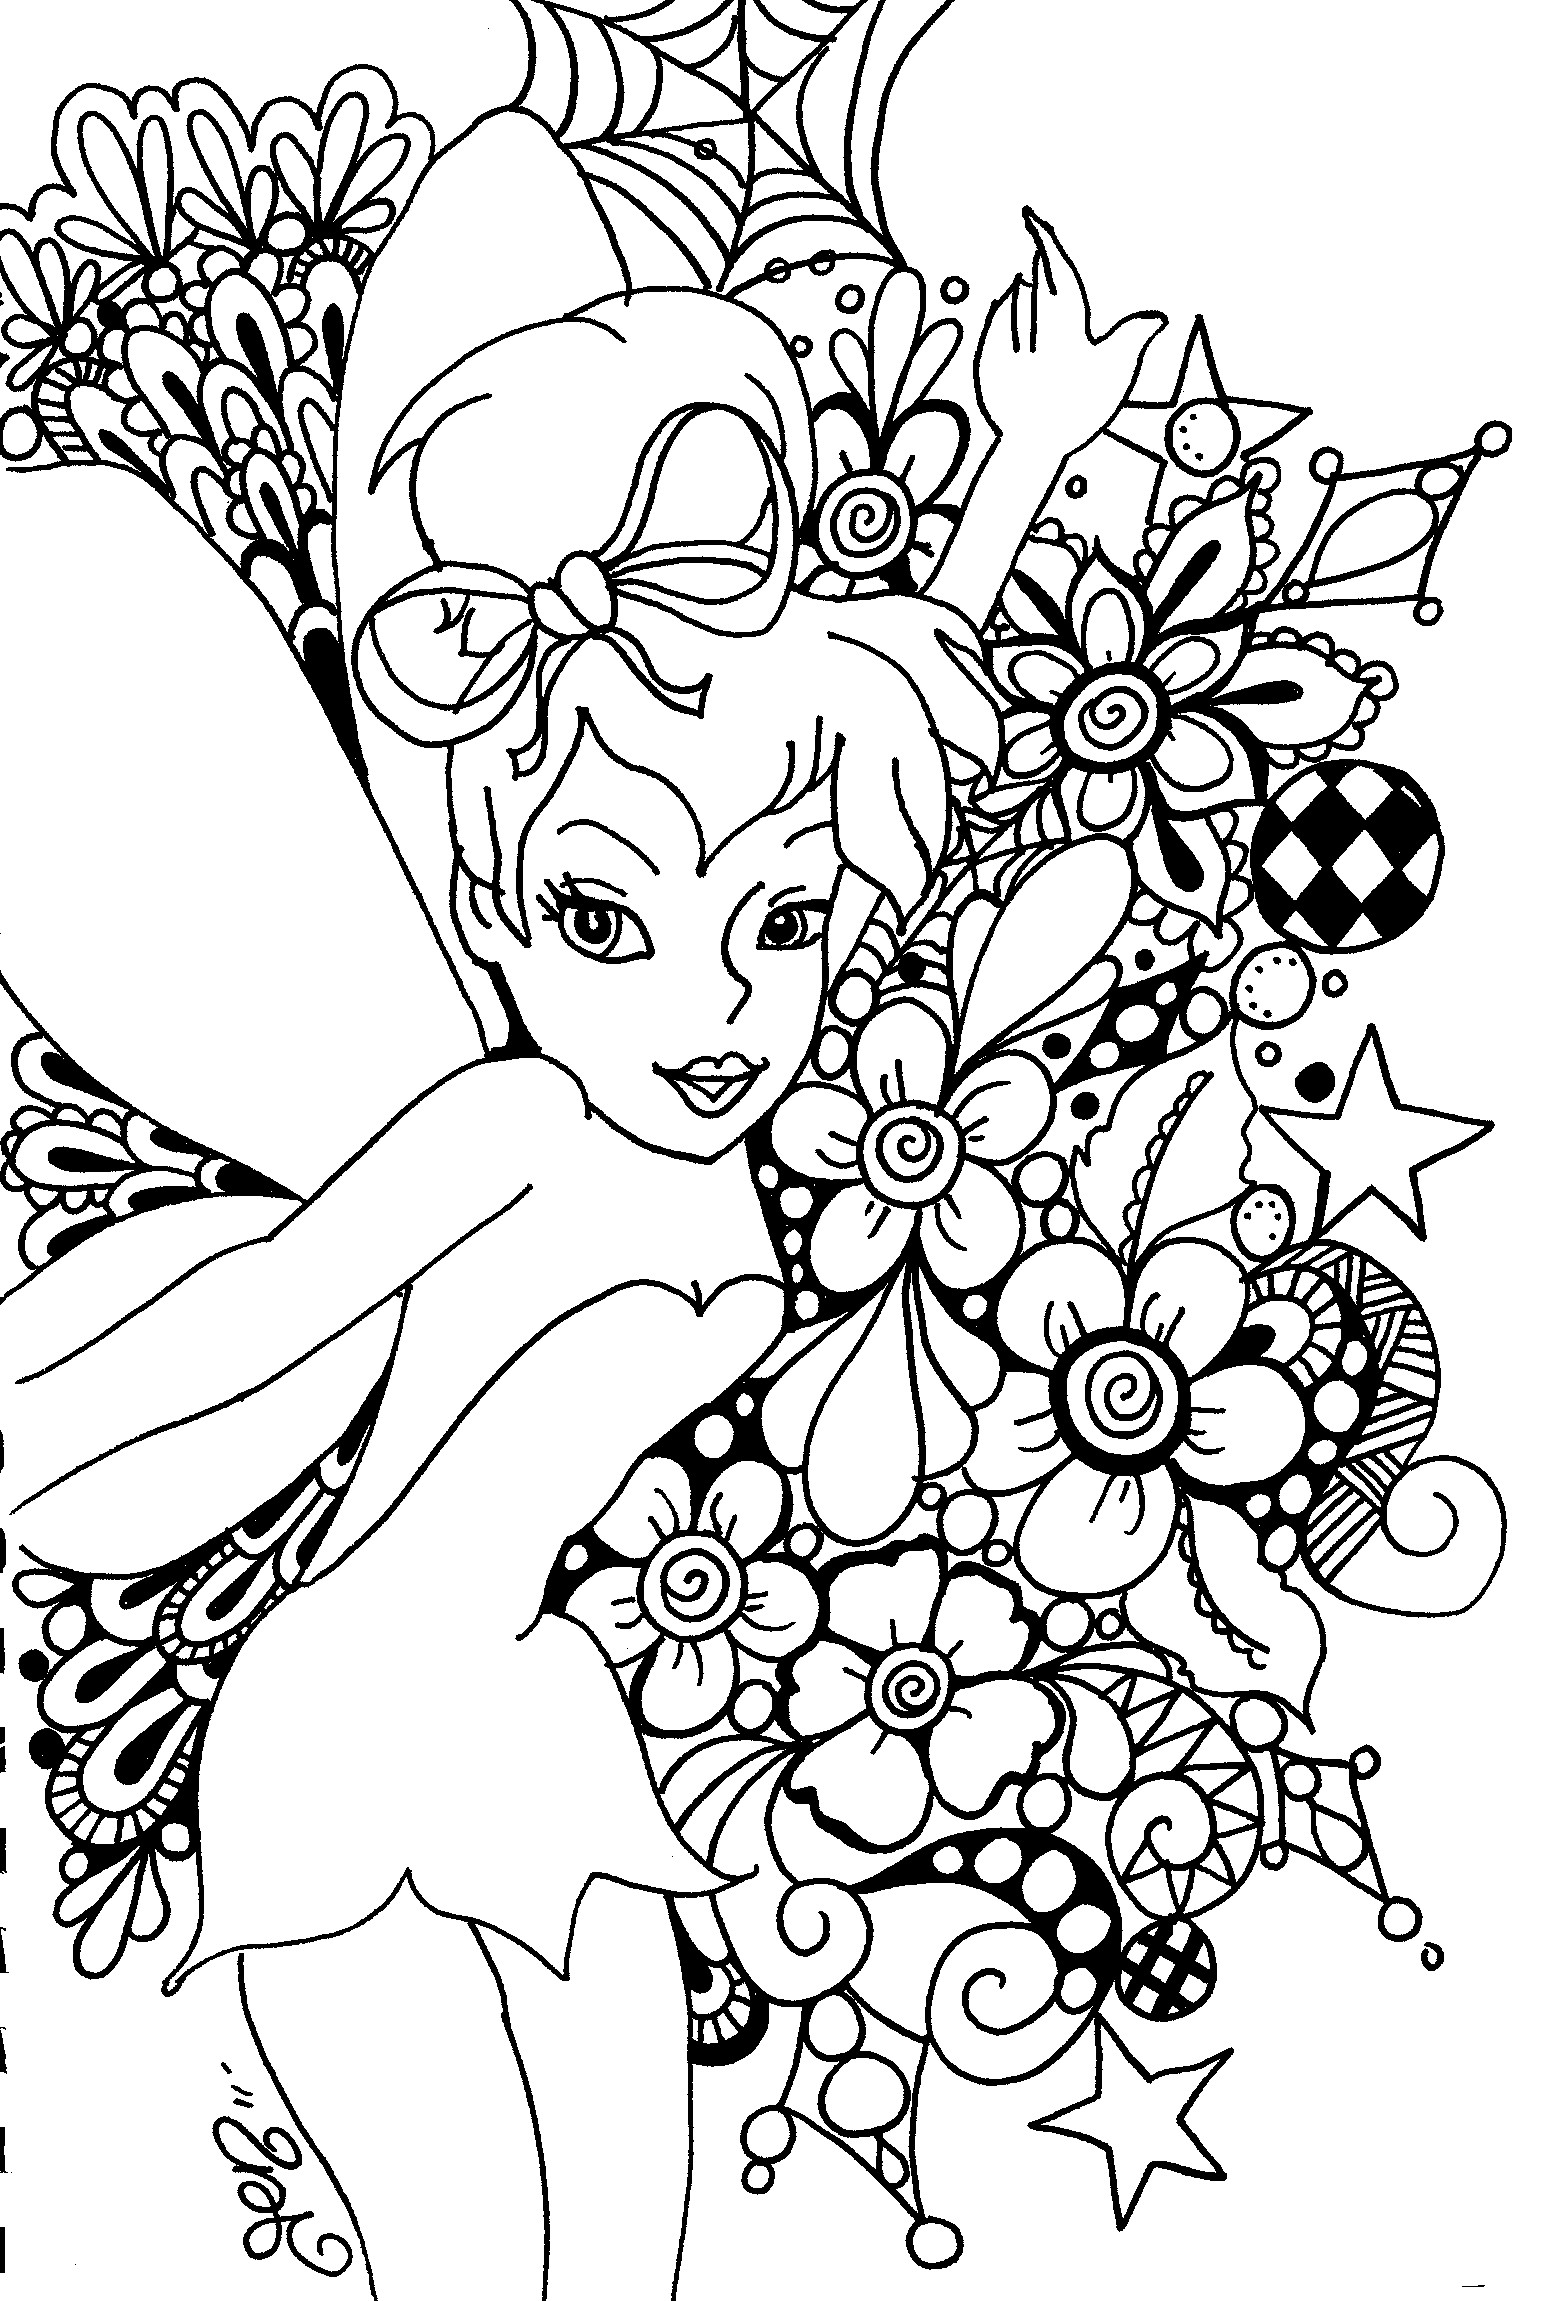 #60 Tinkerbell Birthday Party Ideas & Tinkerbell Coloring